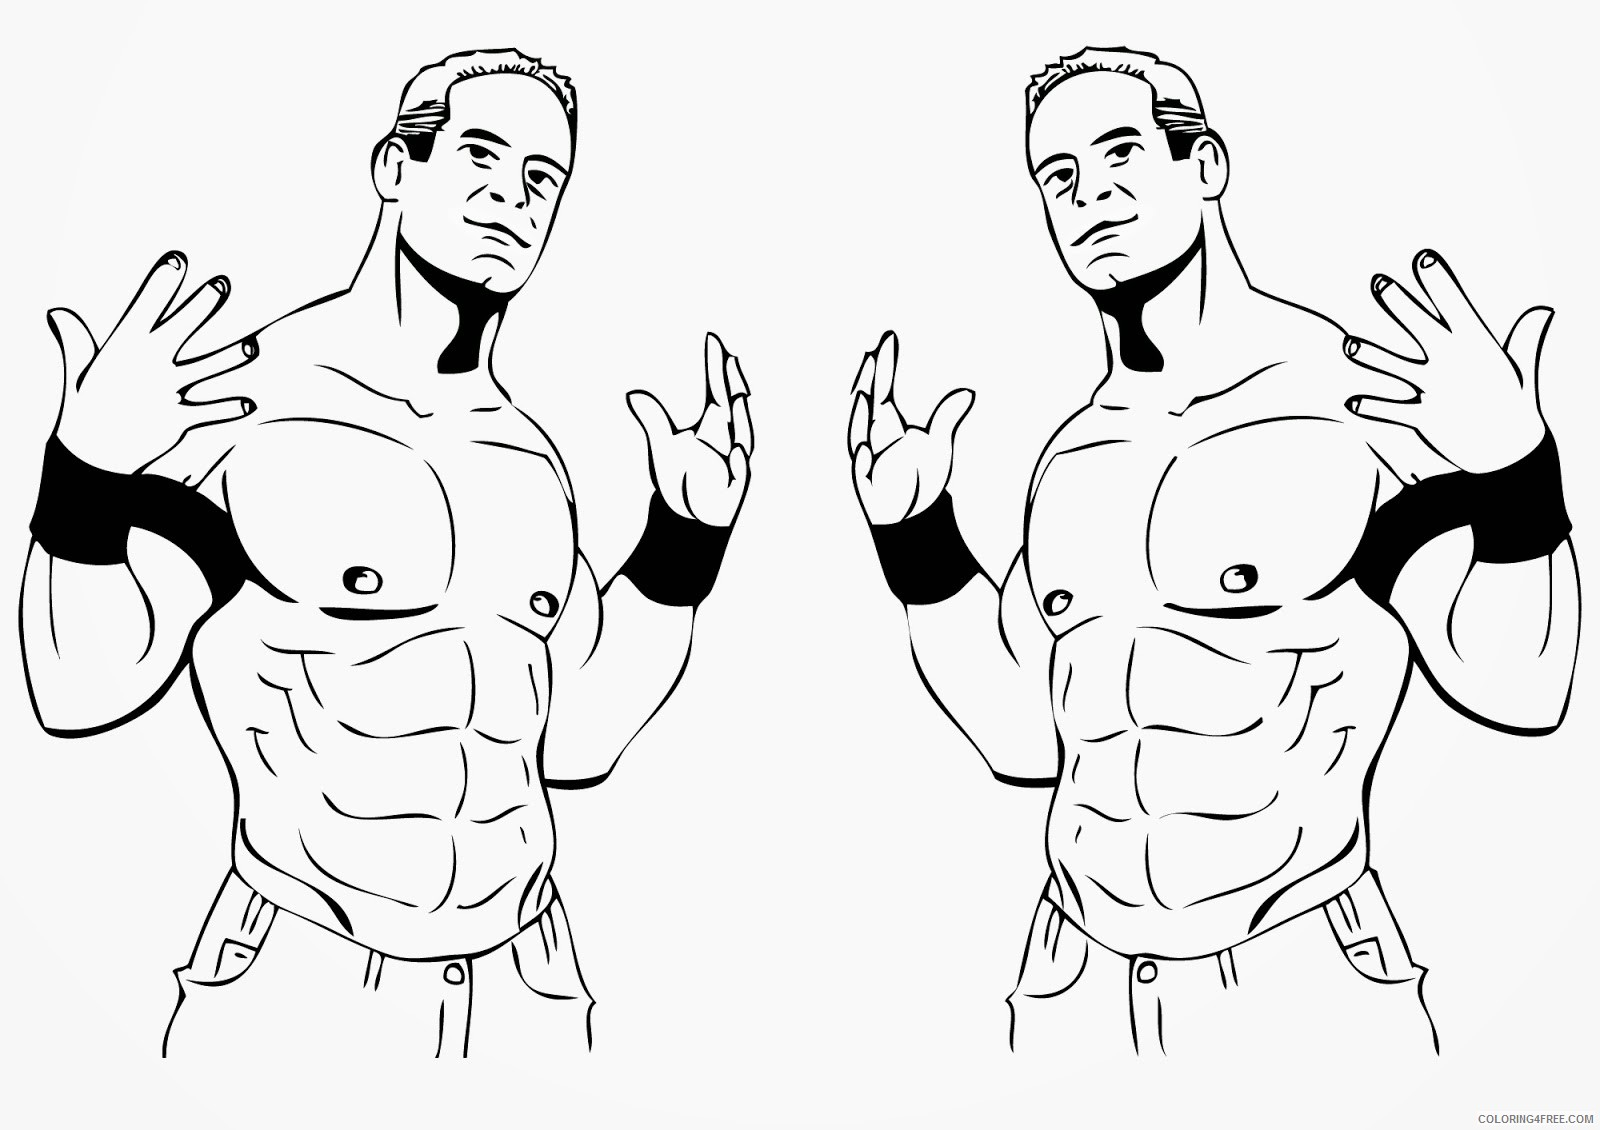 wwe coloring pages john cenas style Coloring4free